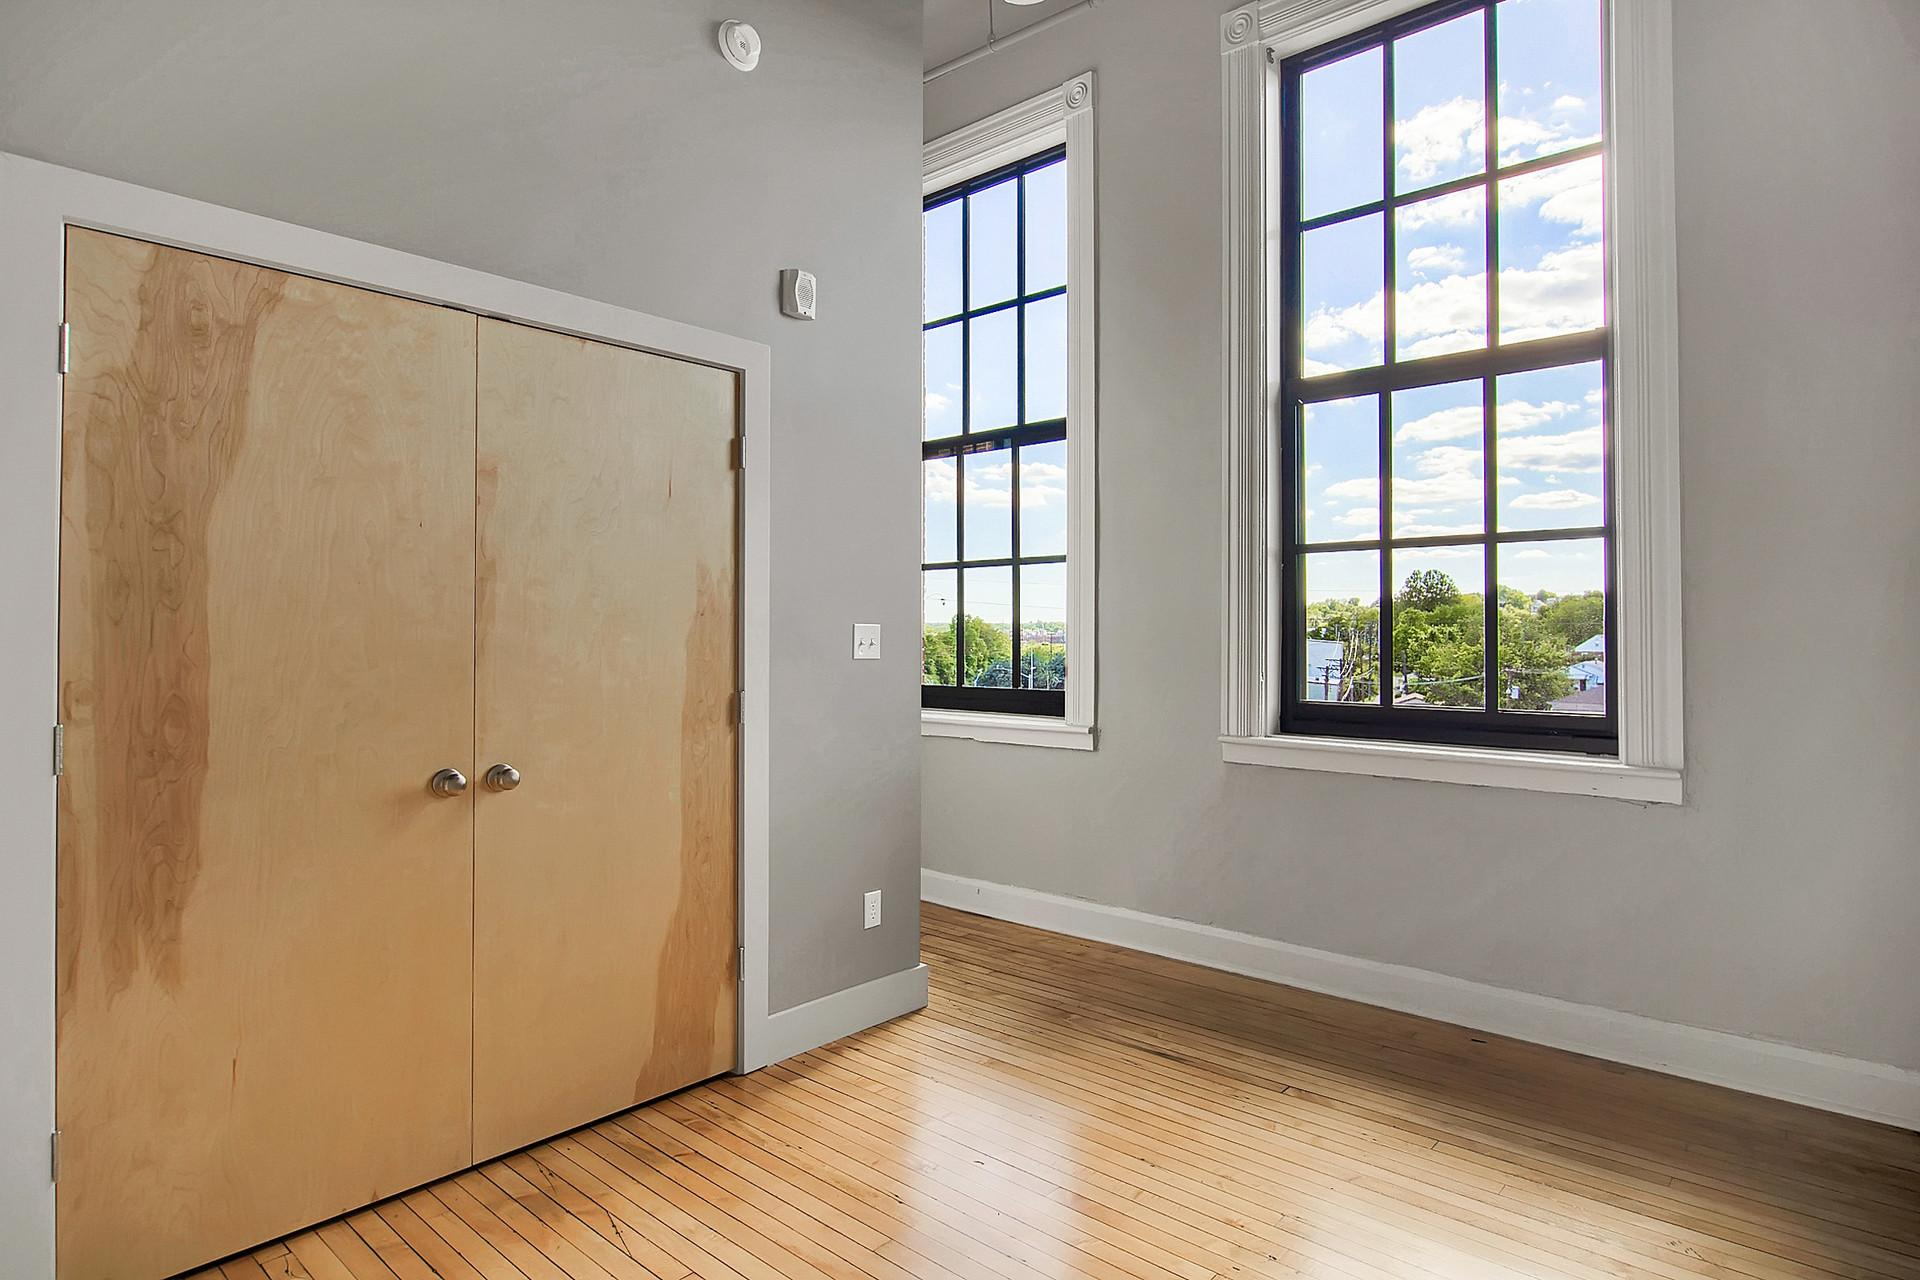 Unit 8, Located in our new Gratiot School Apartments.